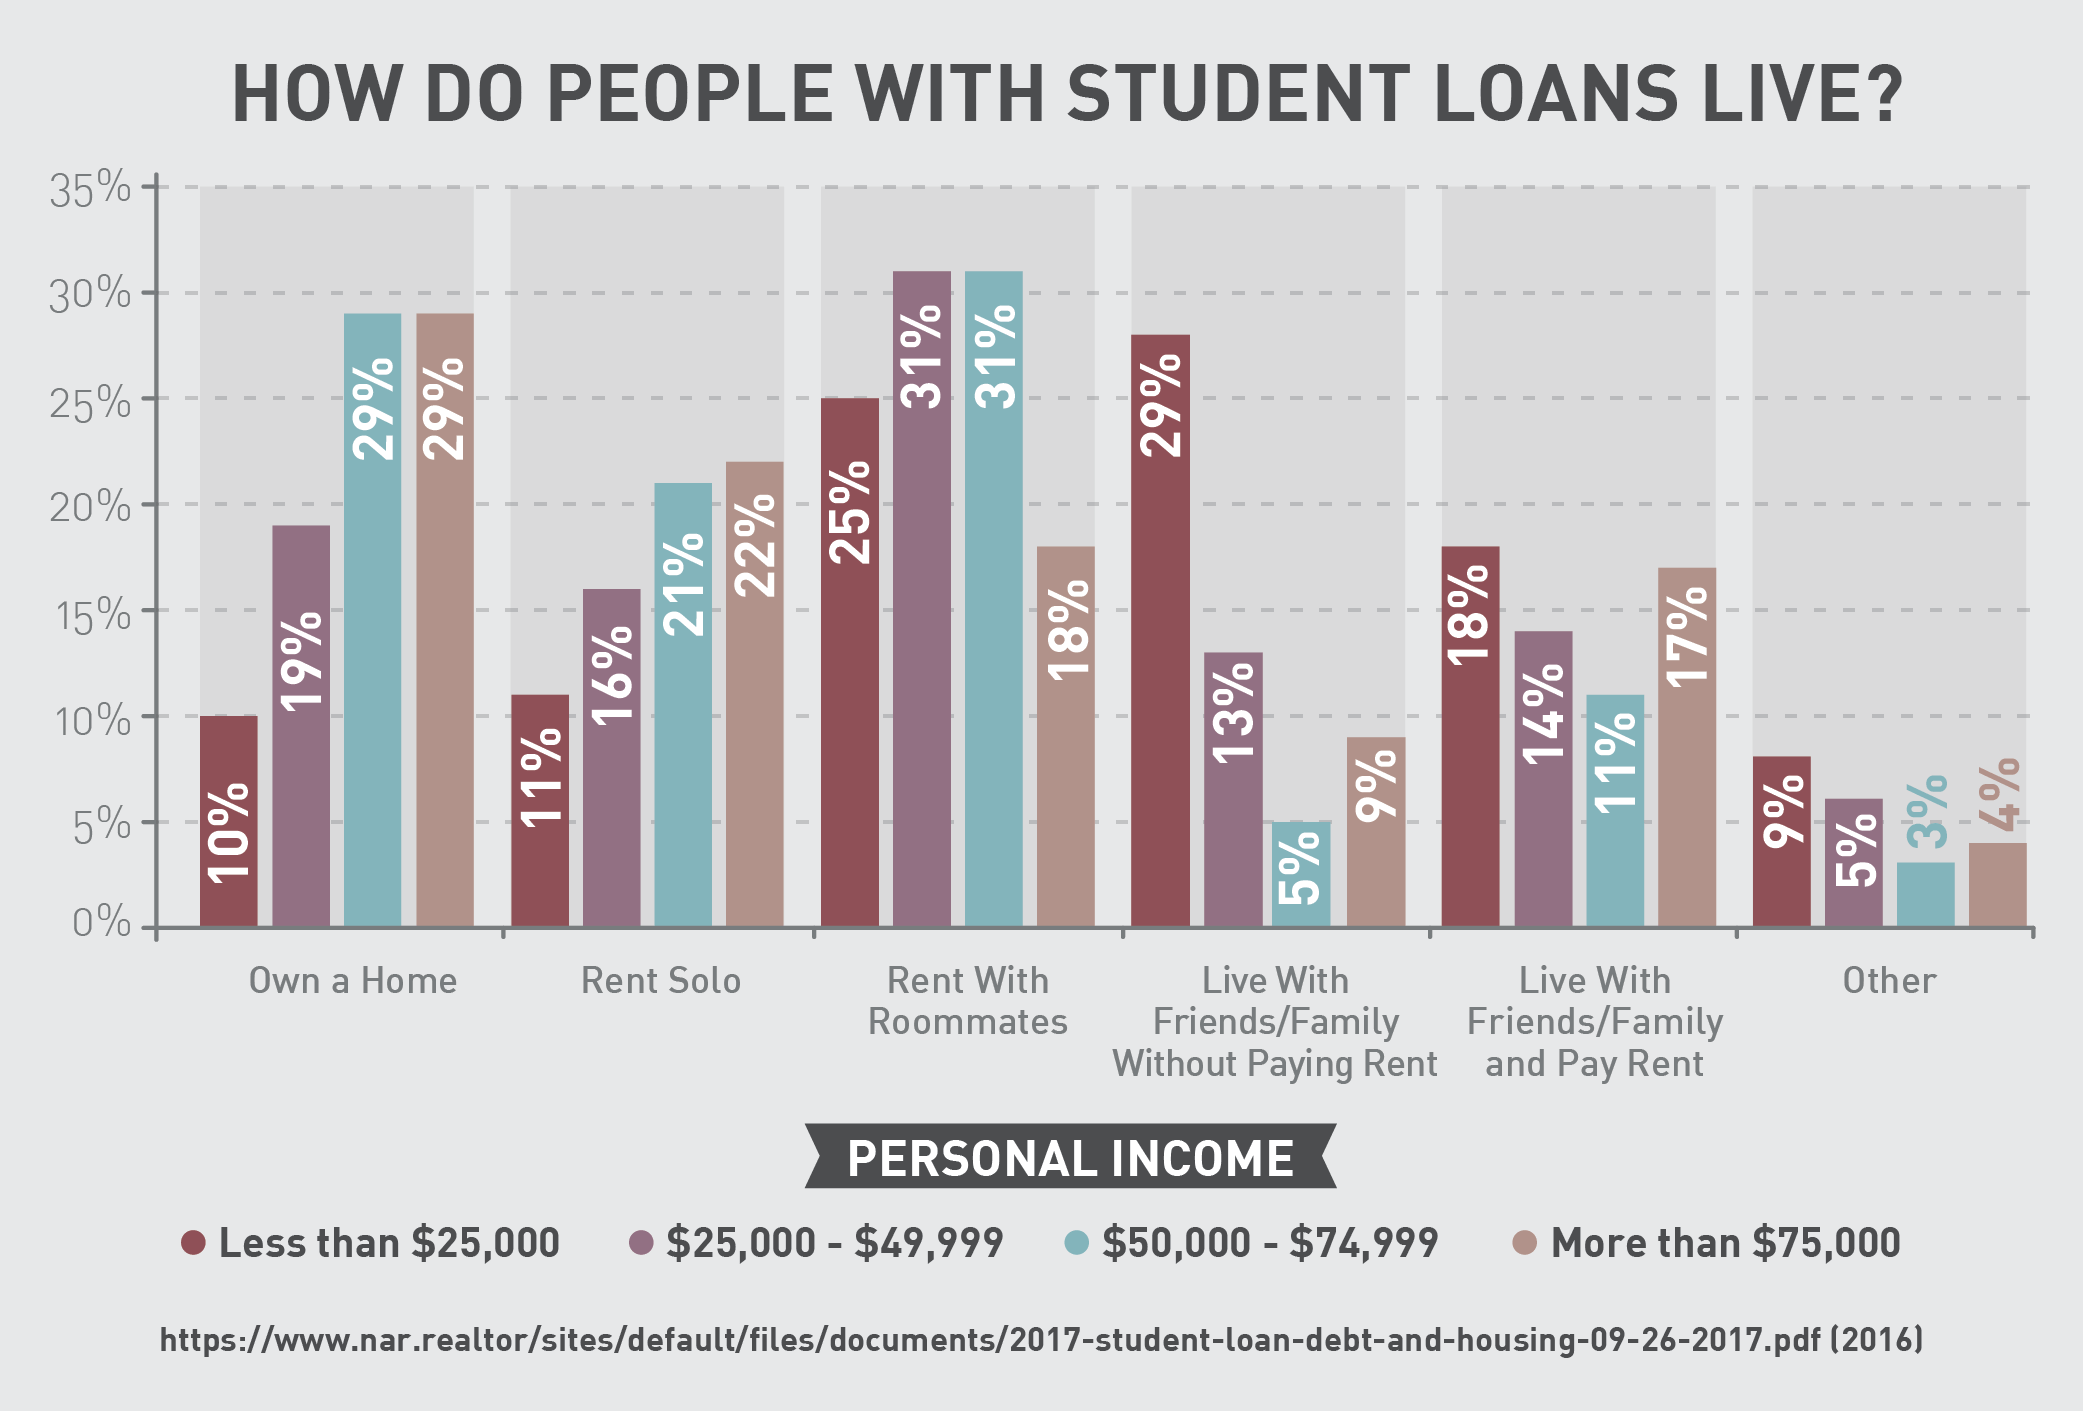 How do people with students loans live?